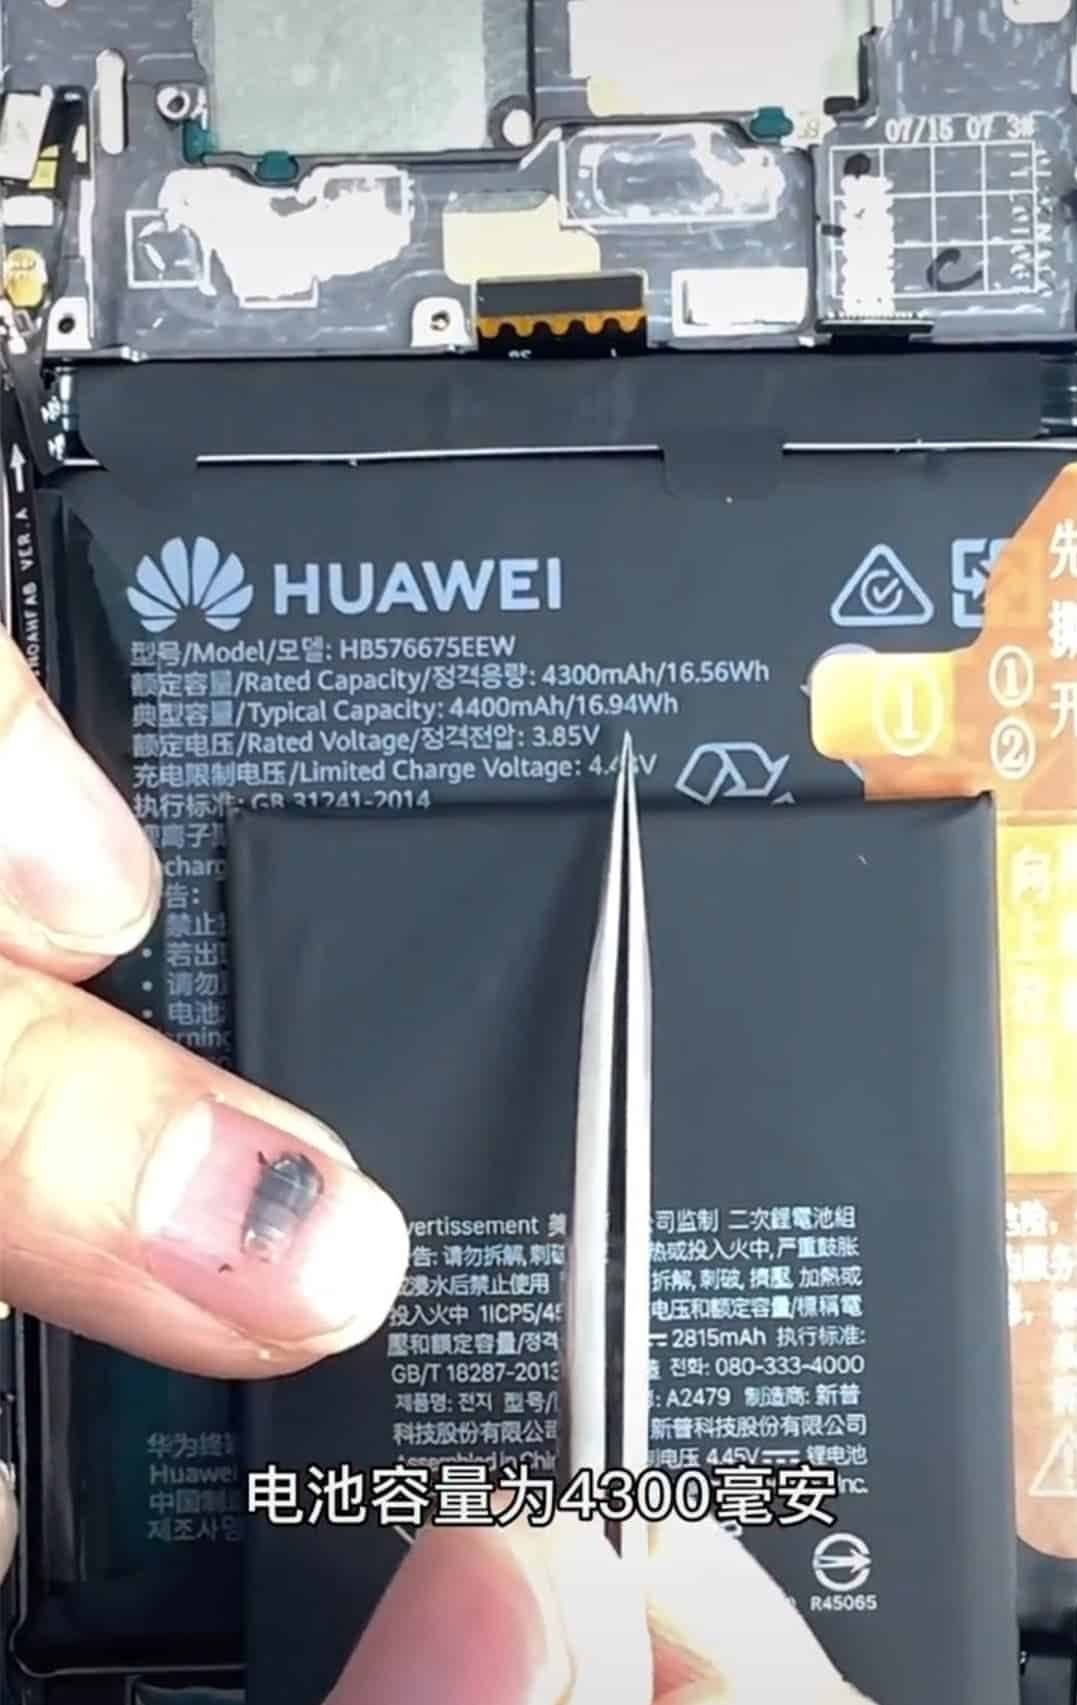 Huawei Mate 40 Pro Vs iPhone 12 Pro - disassembly comparison